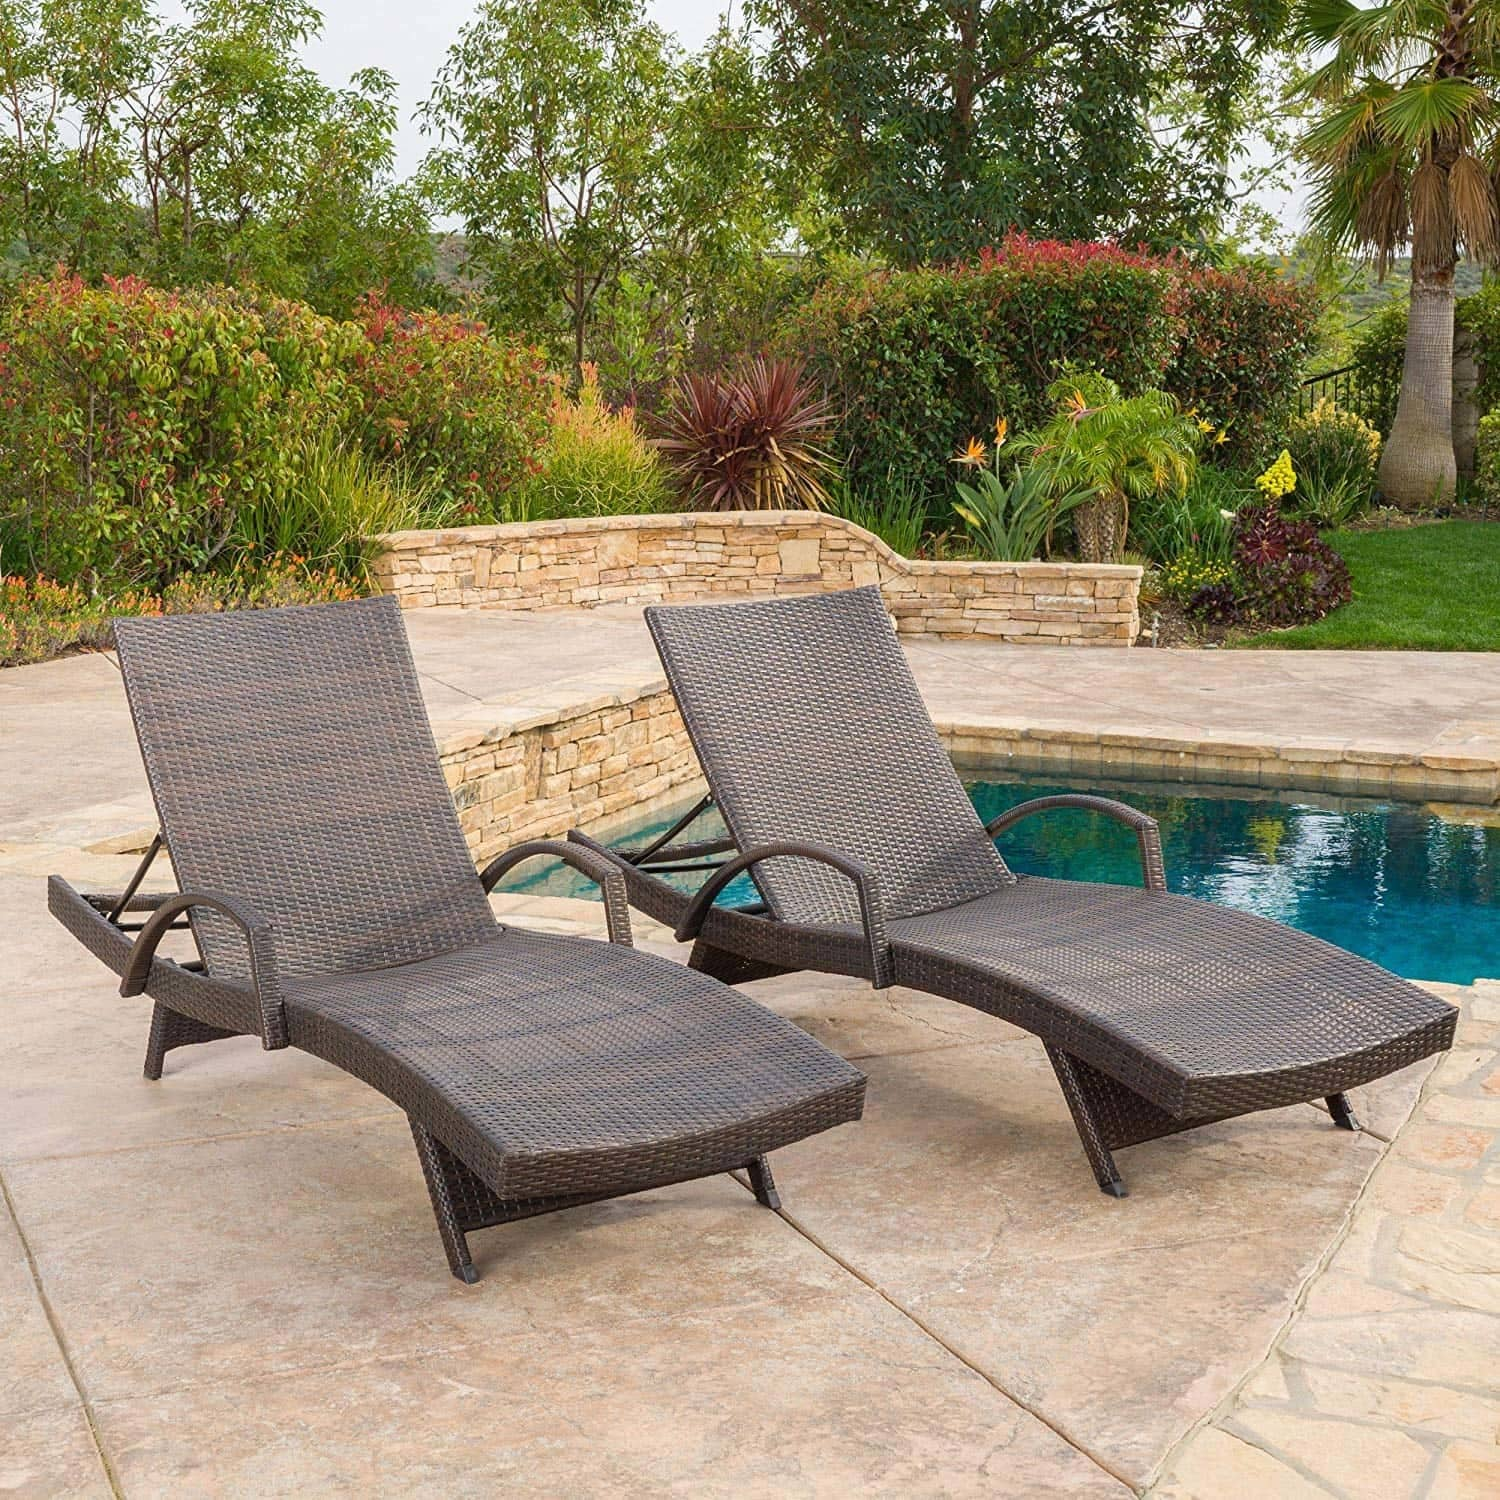 Olivia Outdoor Brown Wicker Armed Chaise Lounge Chair